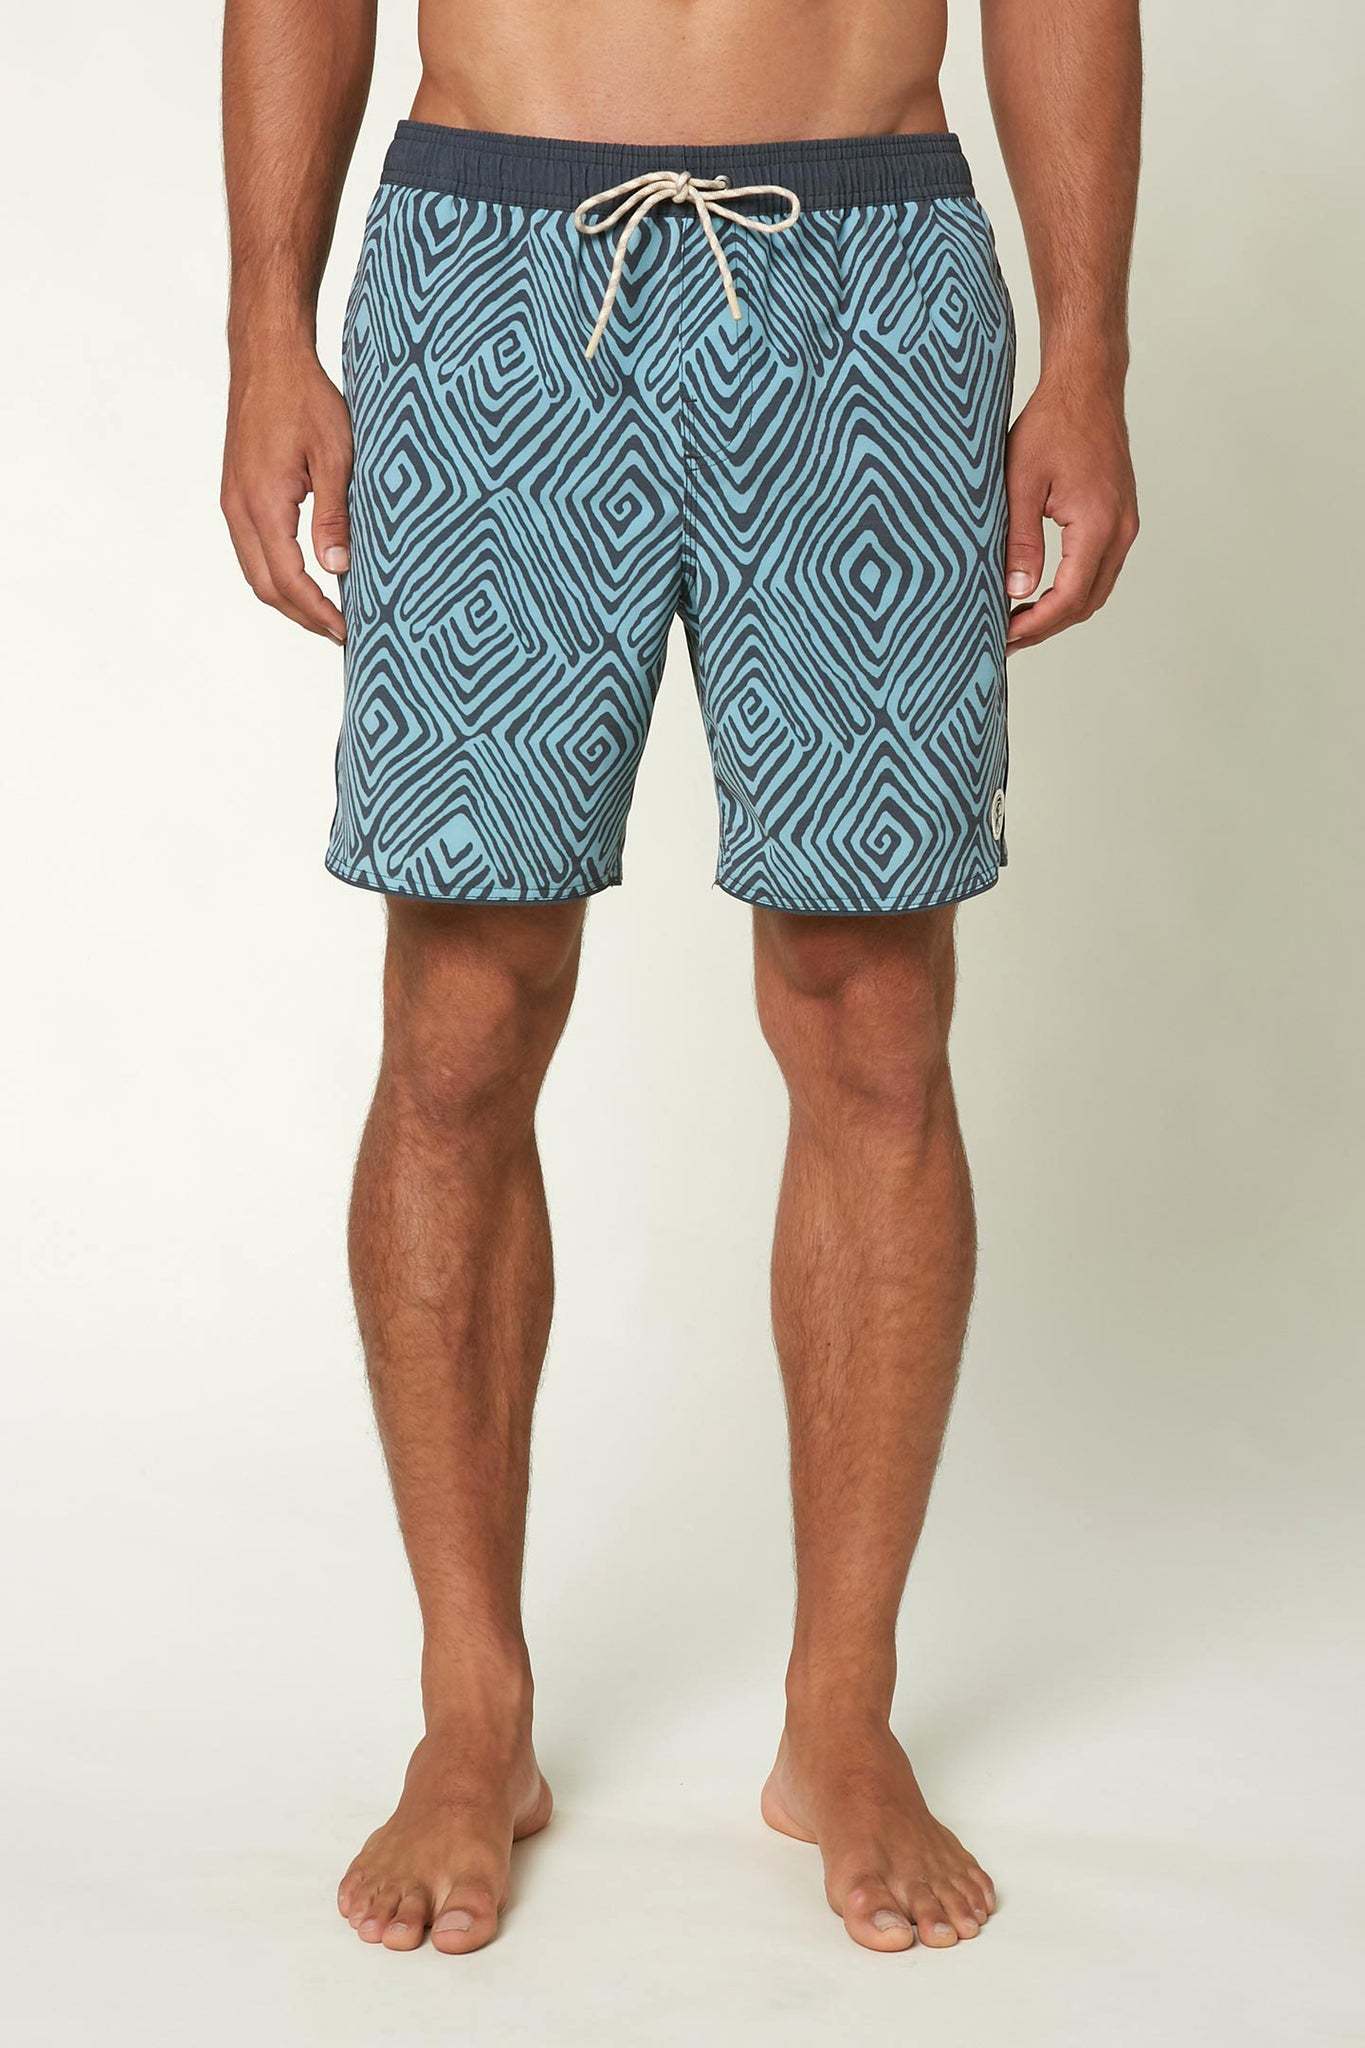 Seconds Volley Cruzer Boardshorts | O'Neill Clothing USA